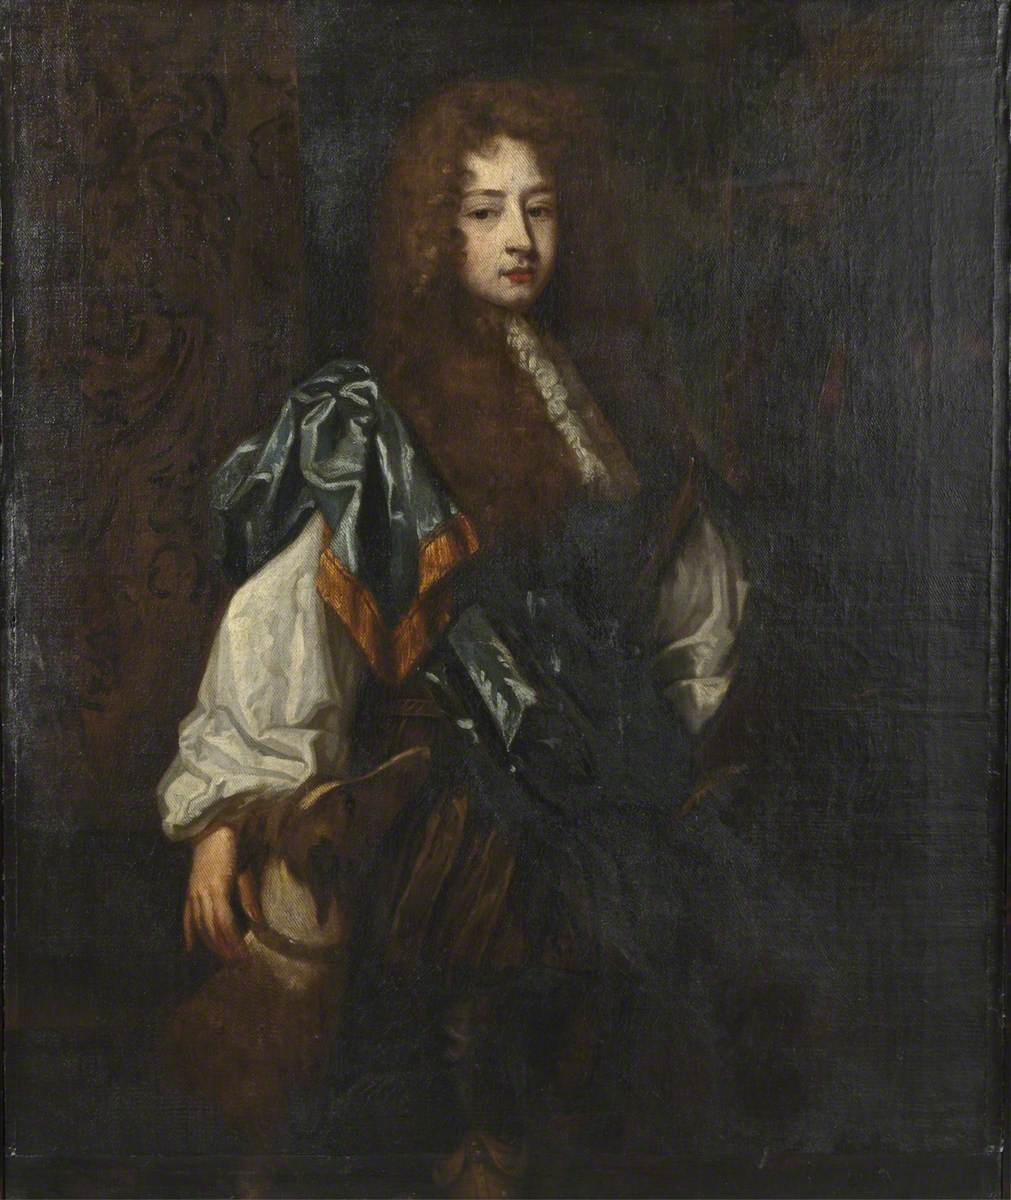 Charles Boyle (c.1662–1704), 3rd Earl of Cork and 2nd Earl of Burlington